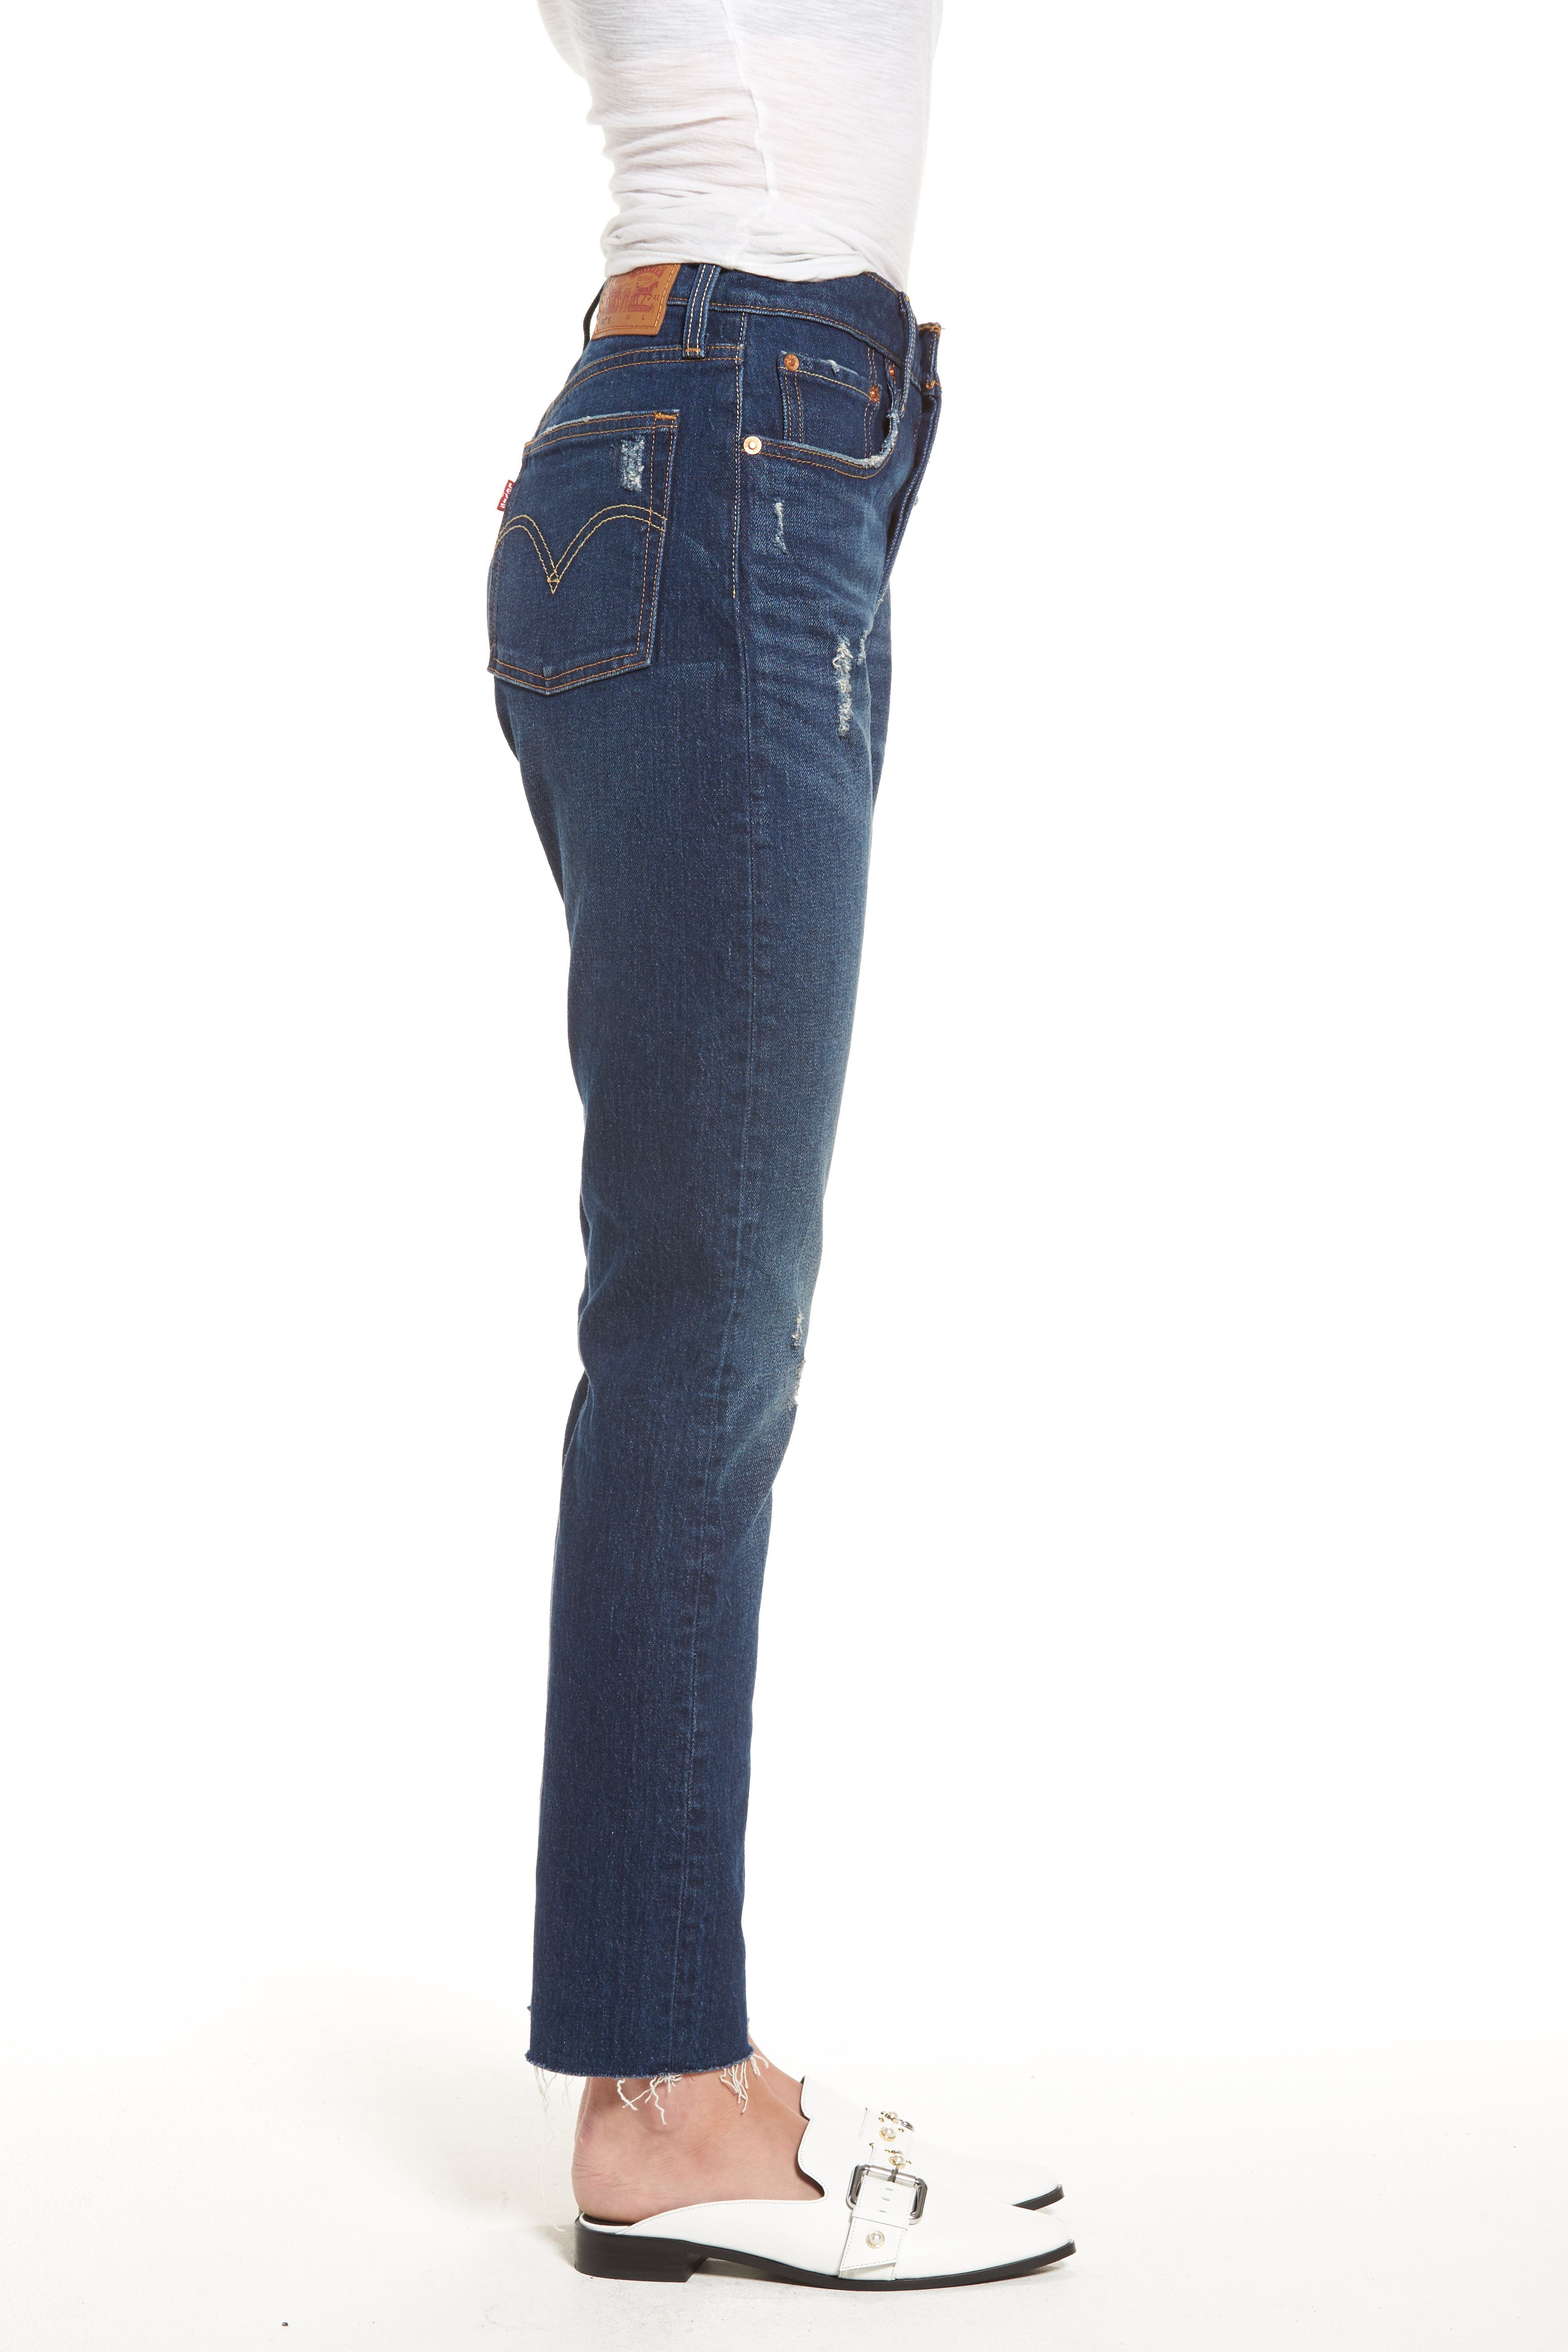 Levis<sup>®</sup> 501 Raw Hem Skinny Jeans,                             Alternate thumbnail 6, color,                             Song For Forever